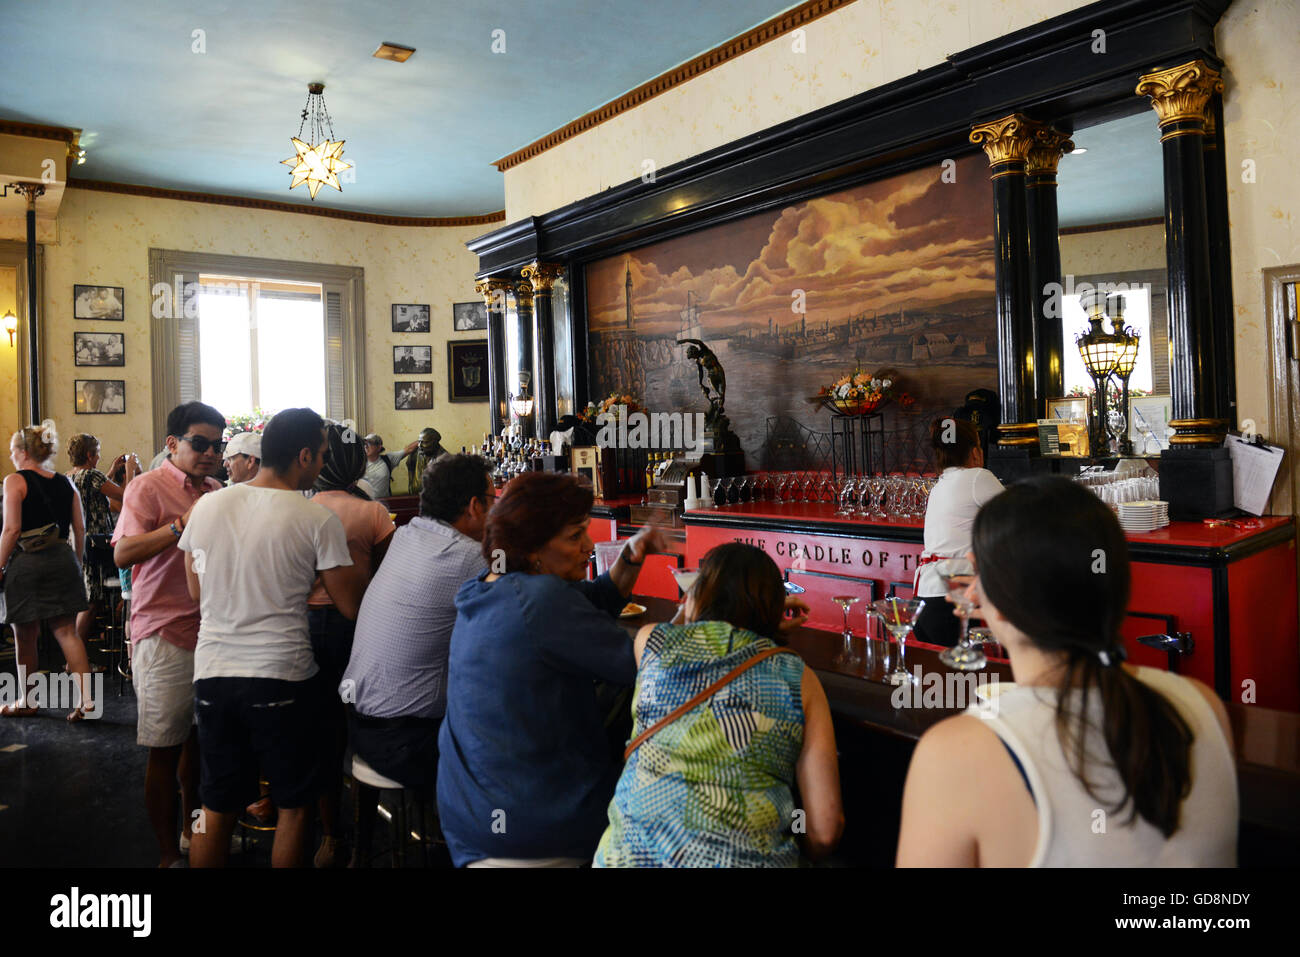 Tourist and locals having a good time in the Floridita cocktail bar. - Stock Image